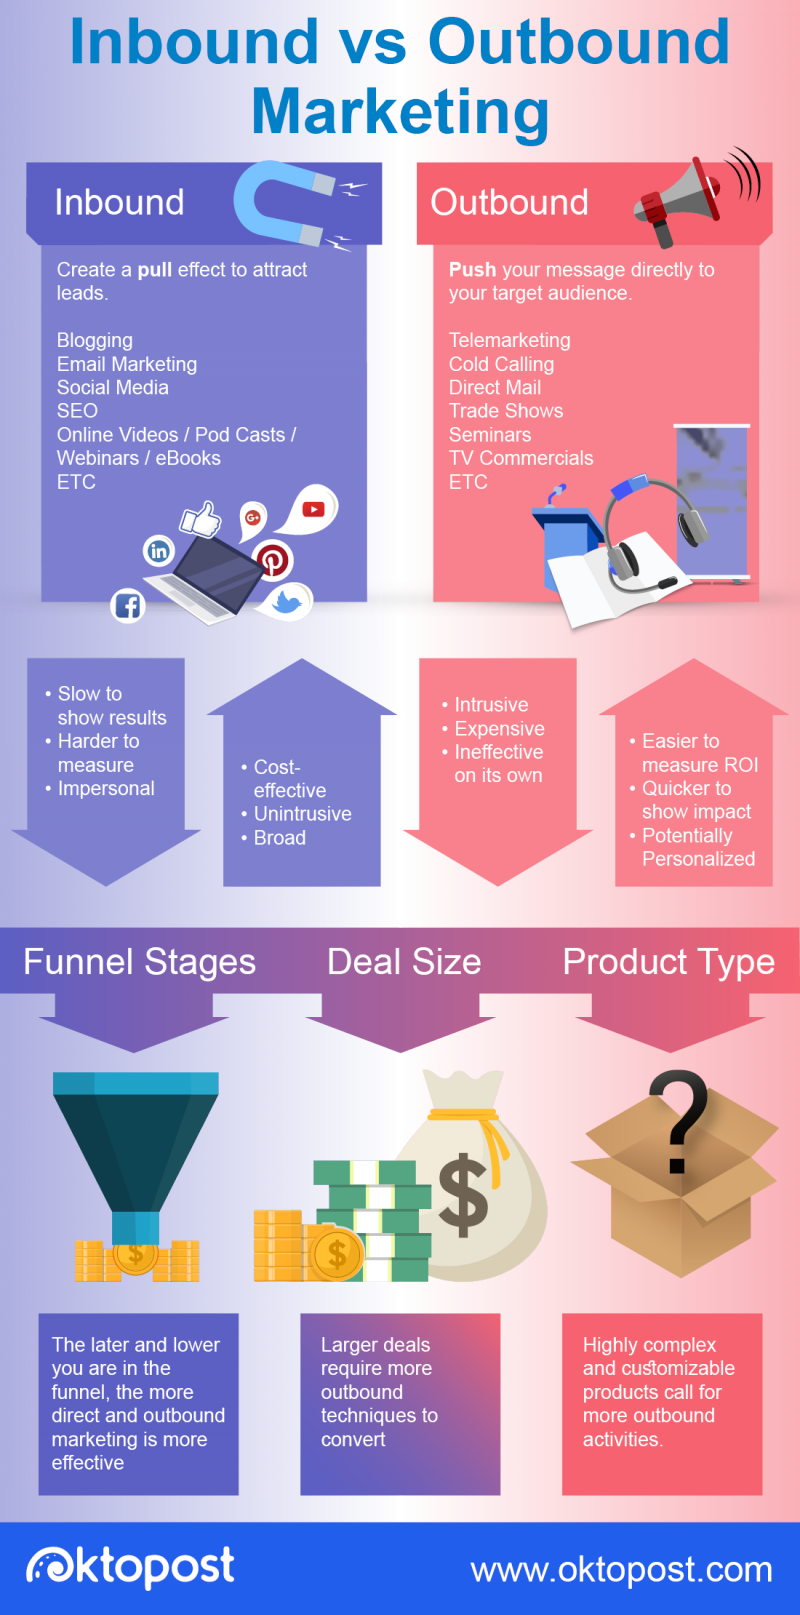 Inbound Marketing VS Outbound Marketing Infographic - Oktopost